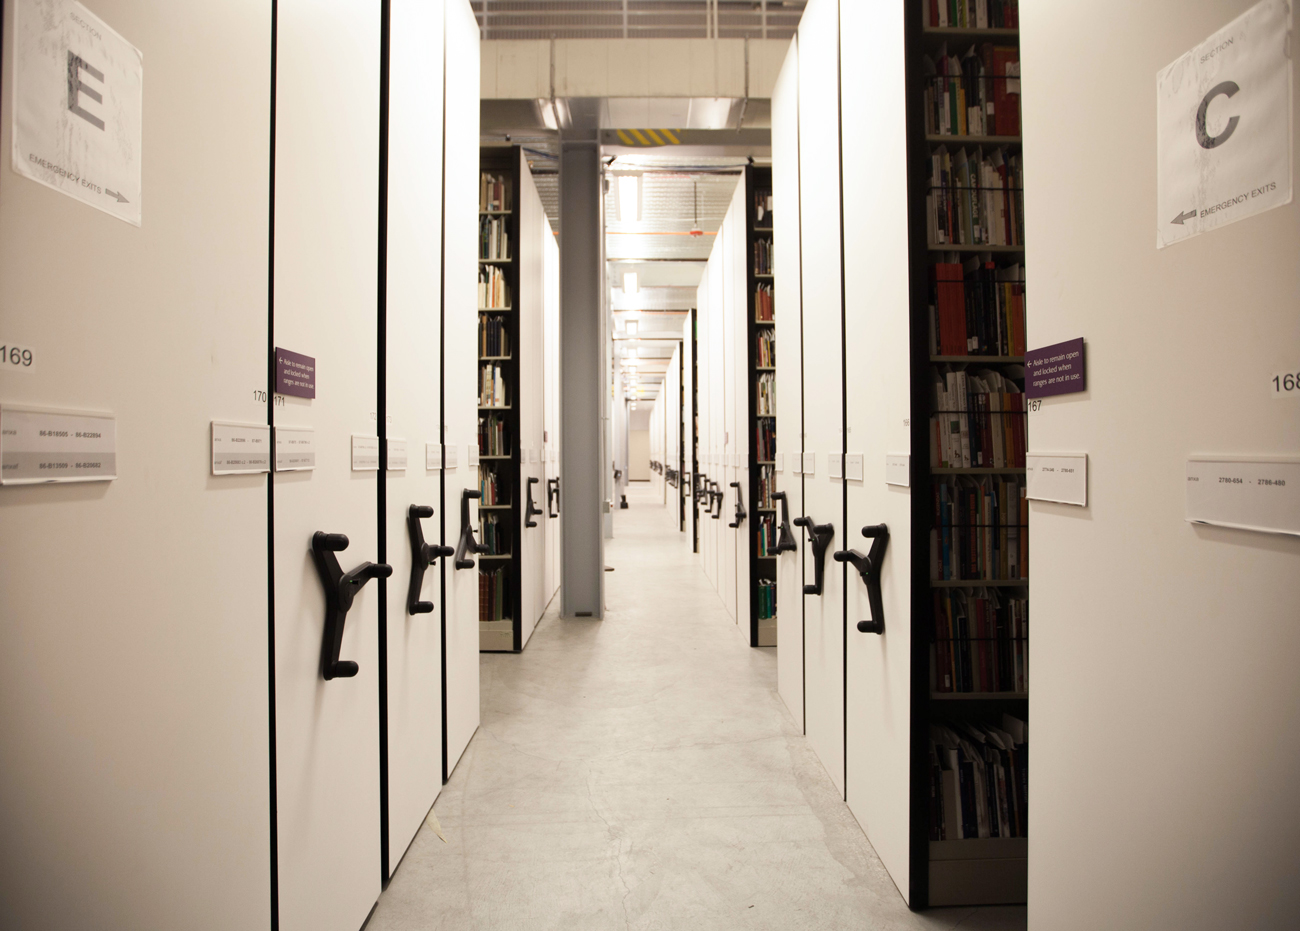 A view down the aisle of a bright modern library. Floor-to-ceiling book shelves have cranks to move them to save space and allow access to the books.